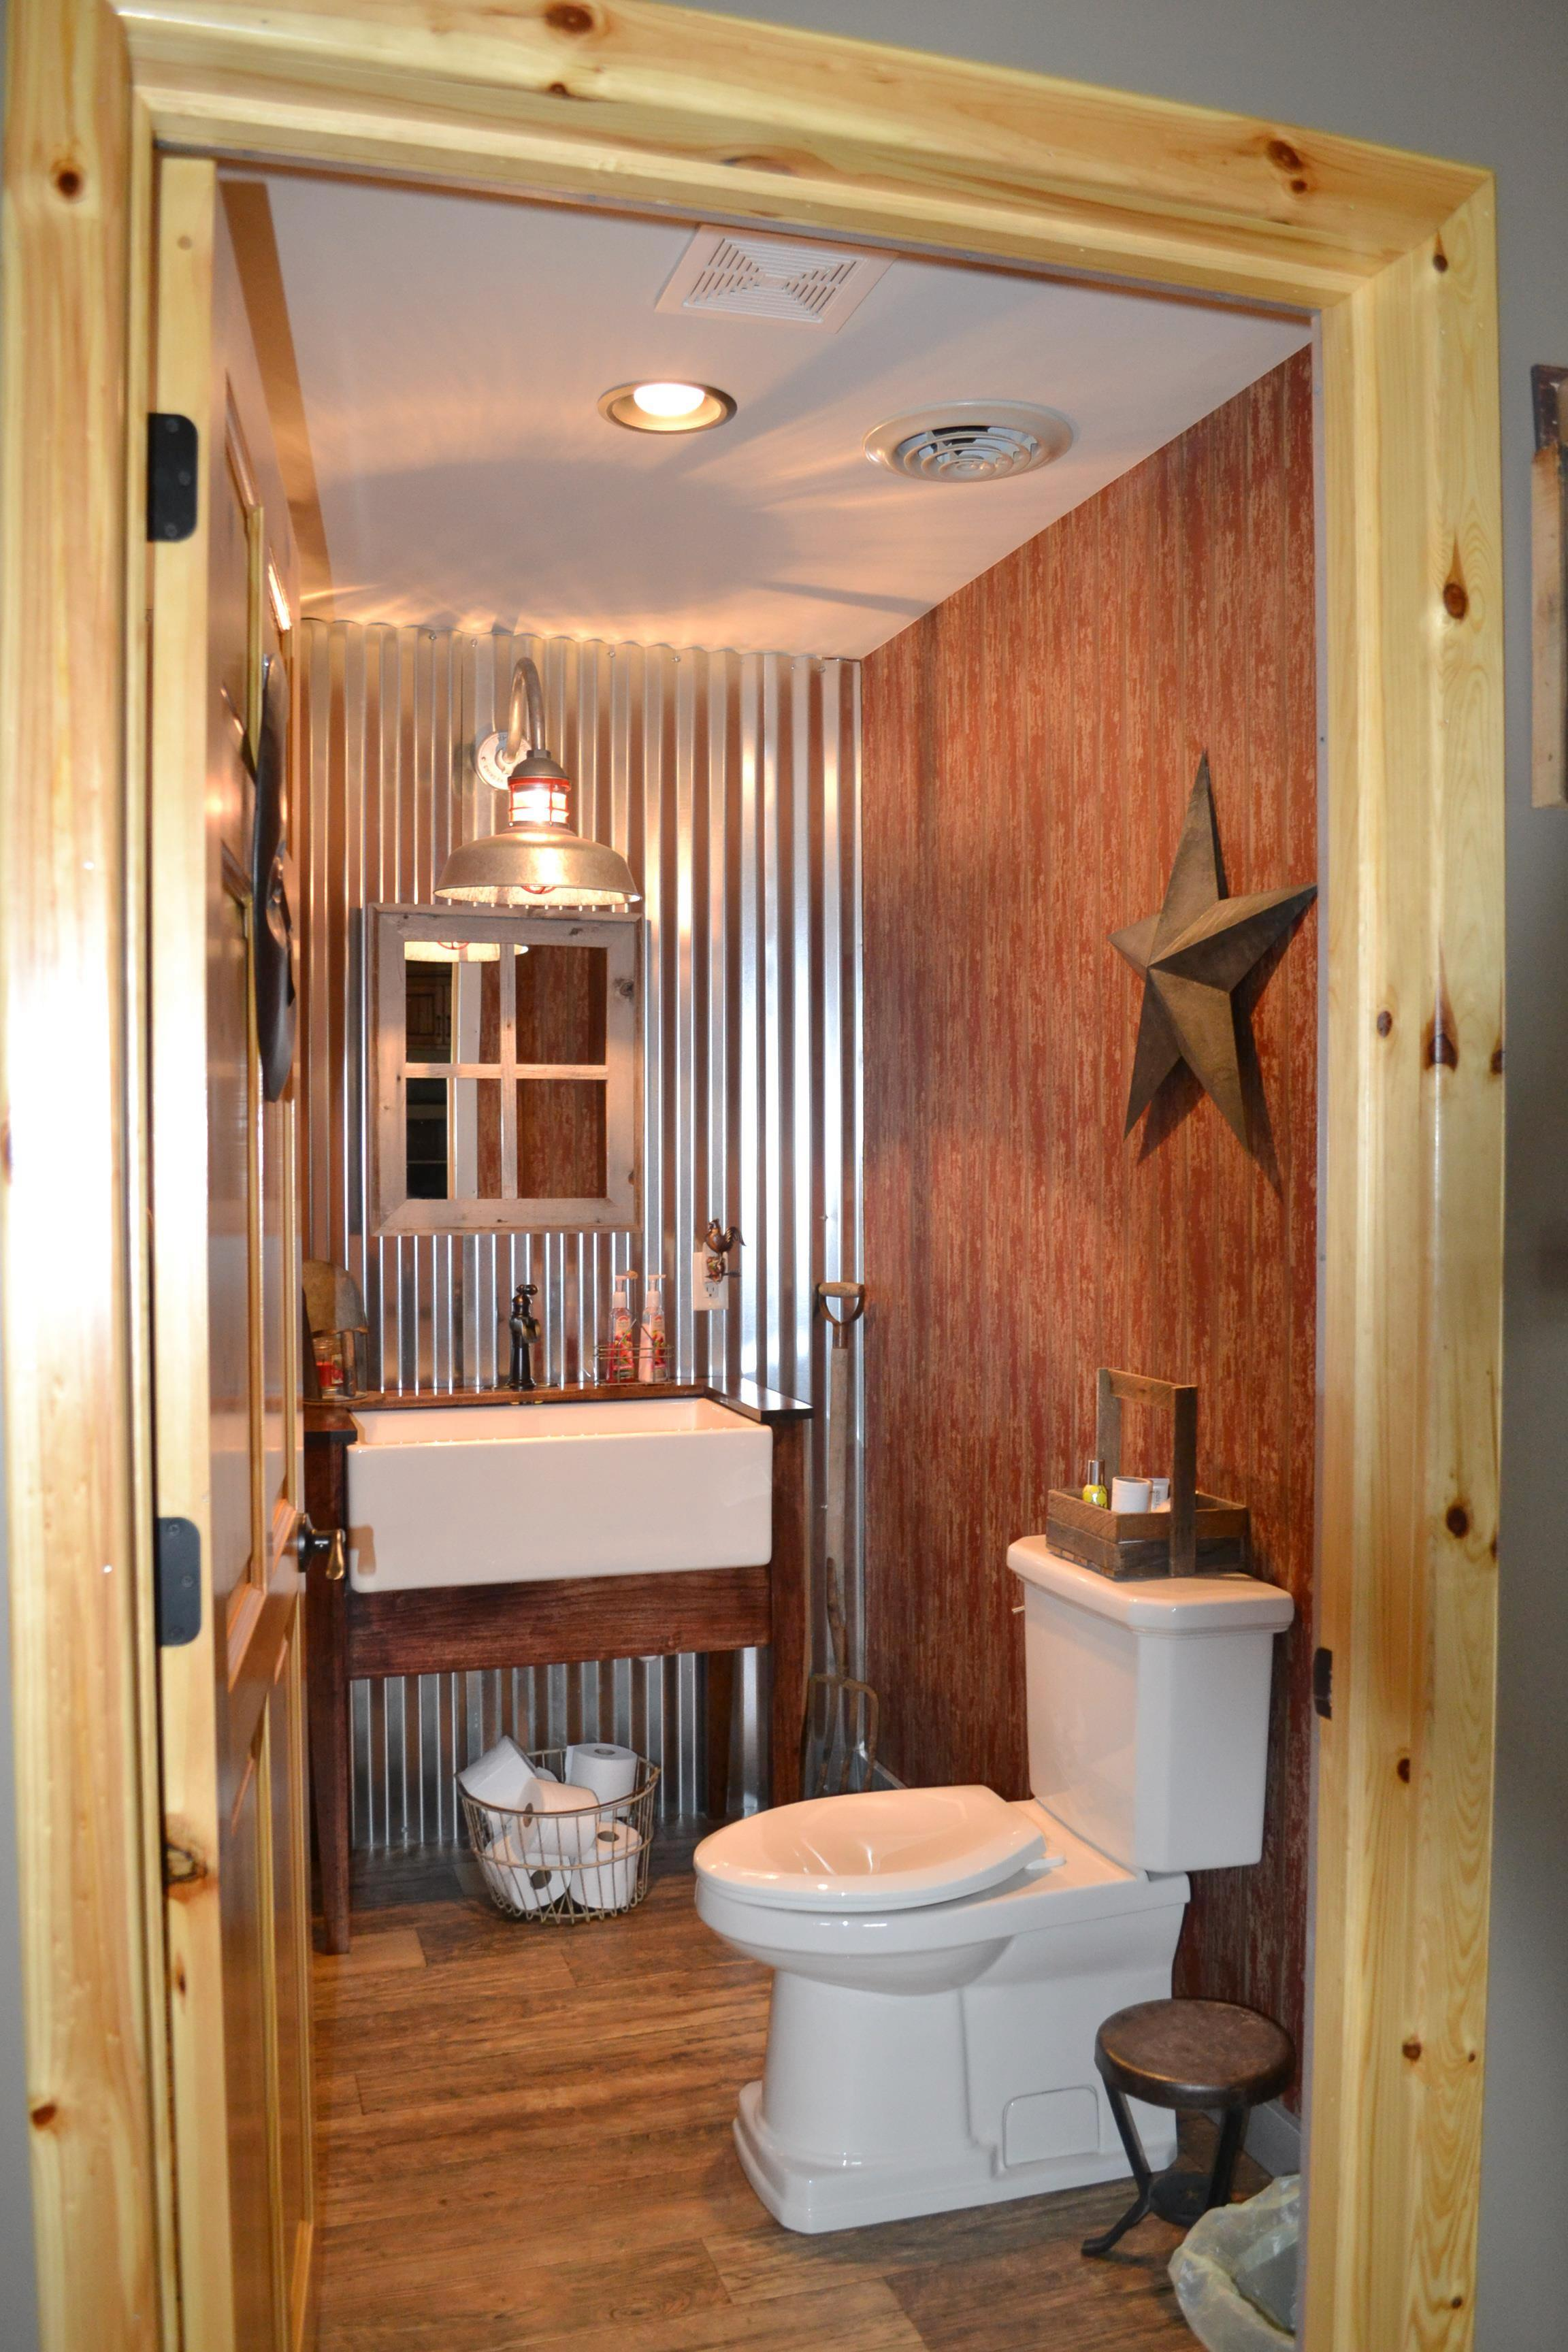 Pole barn bathroom joy studio design gallery best design Bath barn